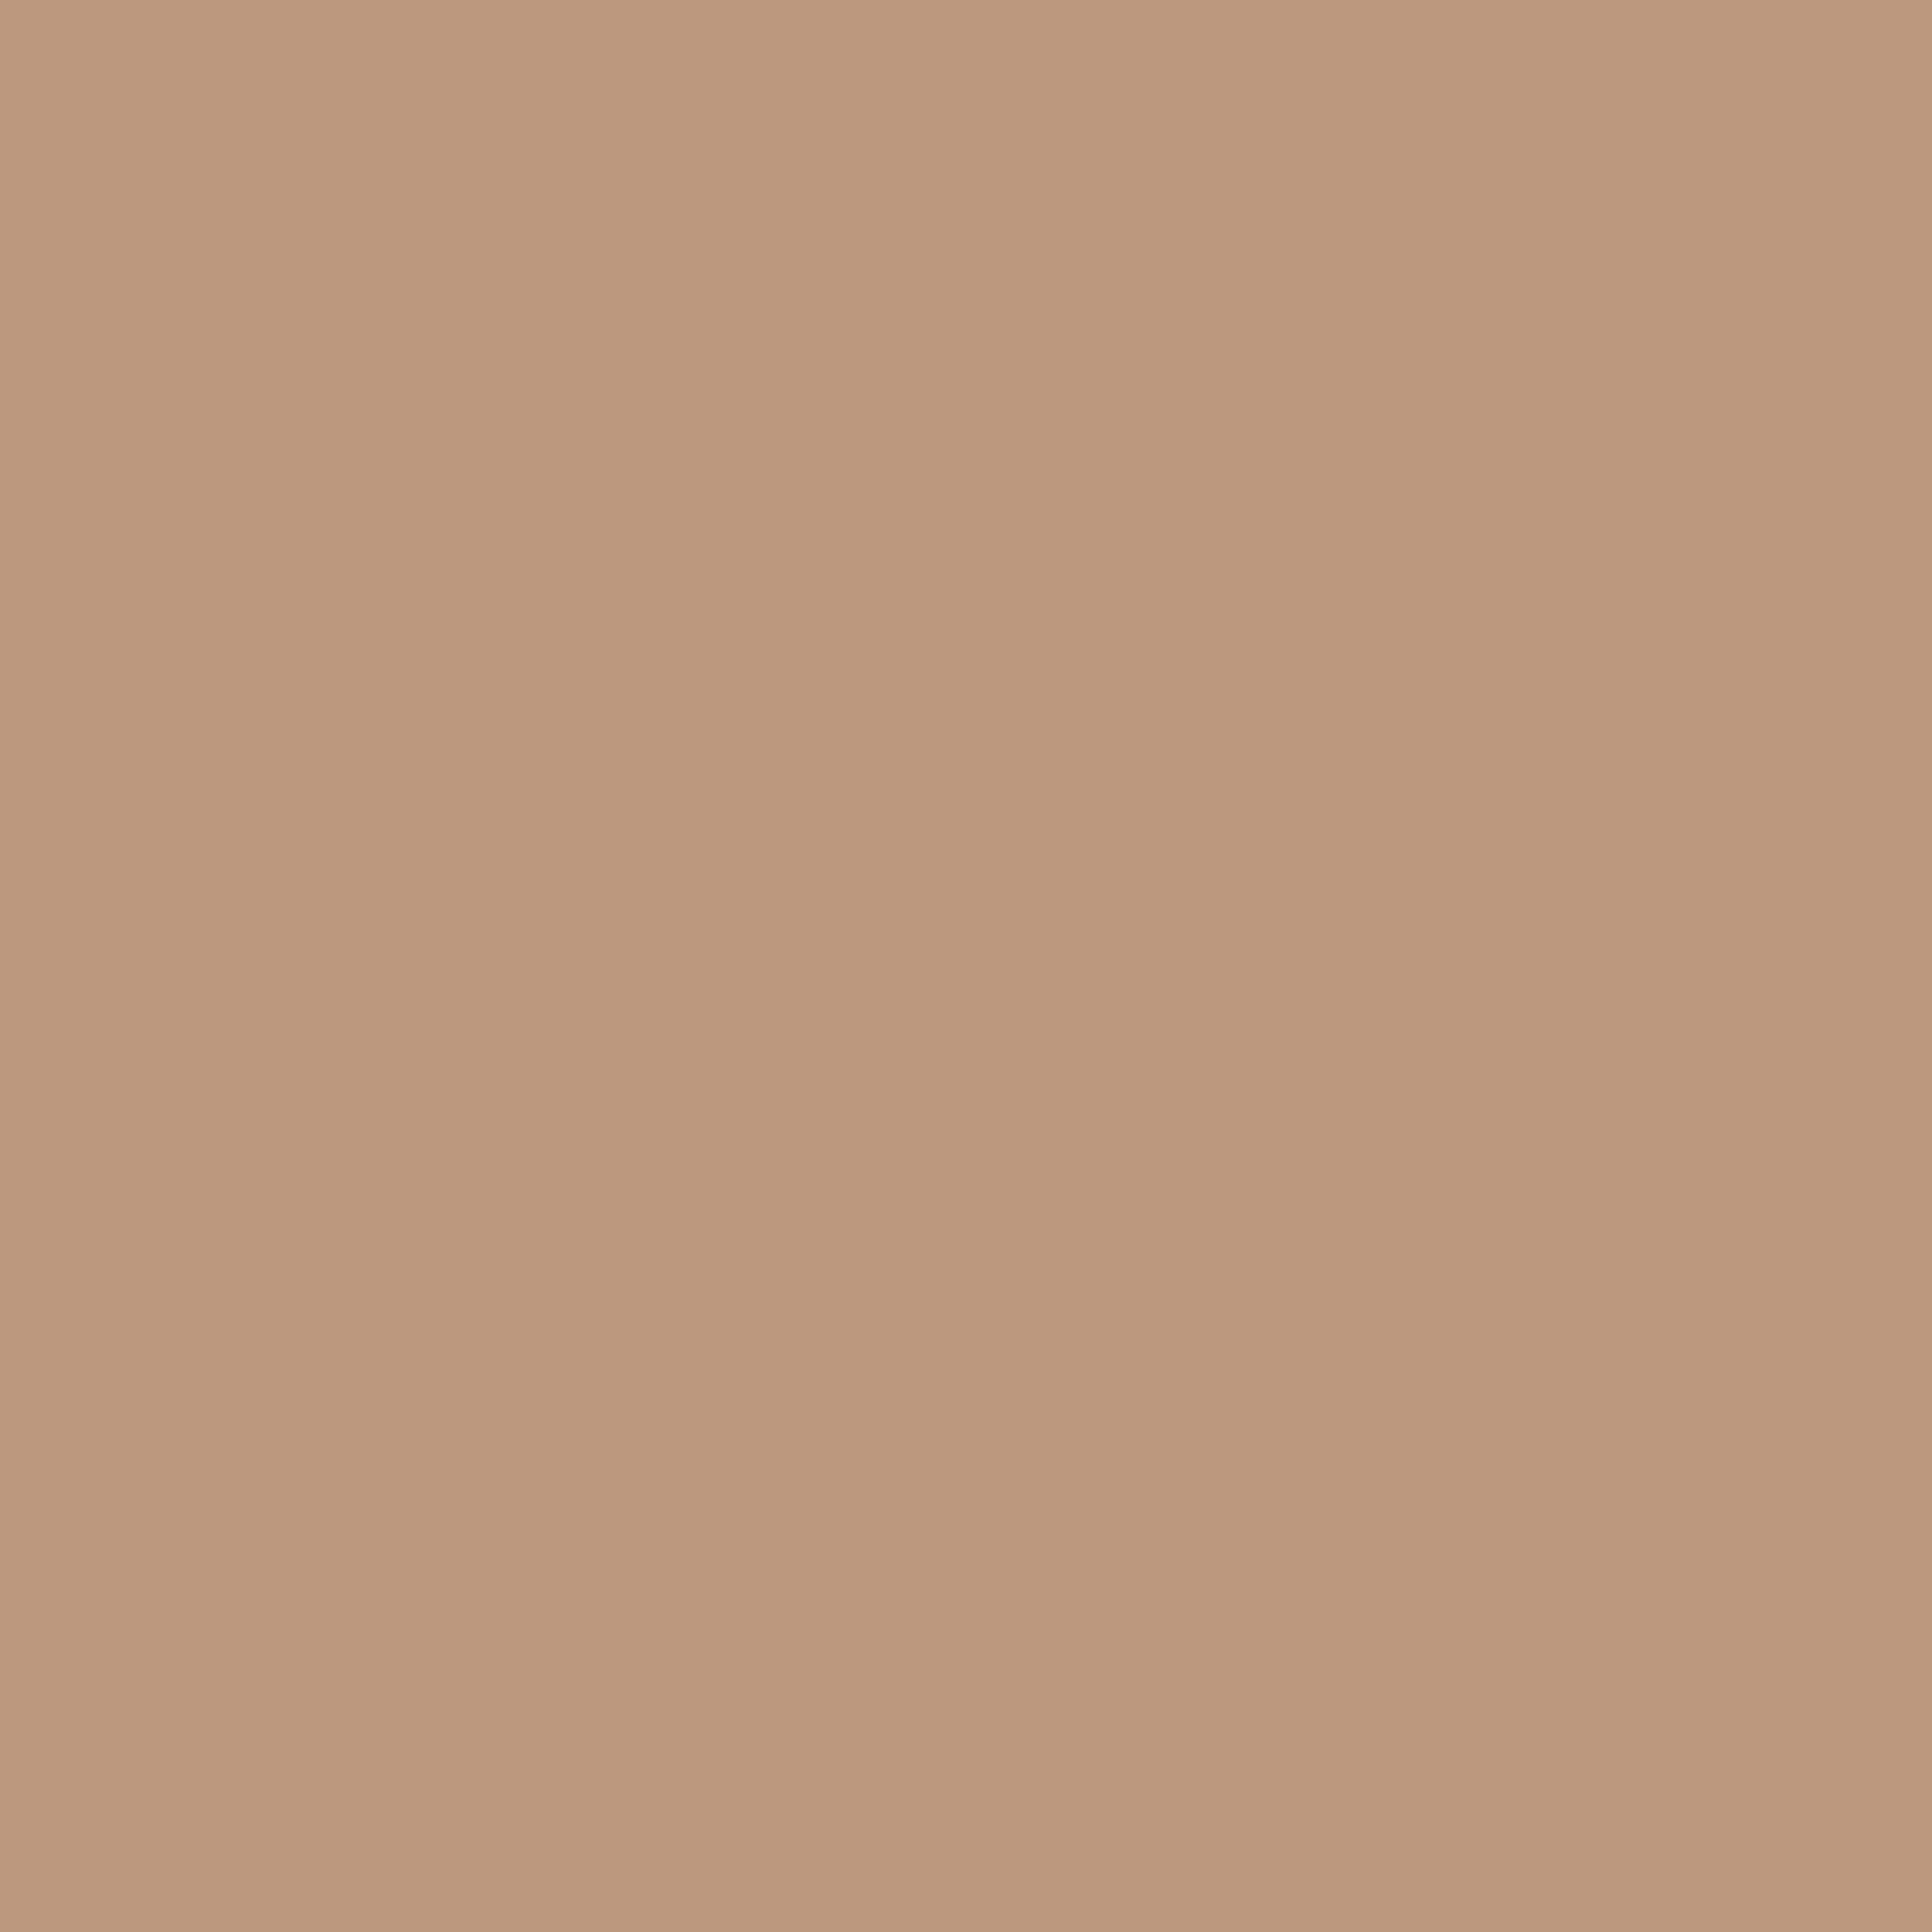 2048x2048 Pale Taupe Solid Color Background